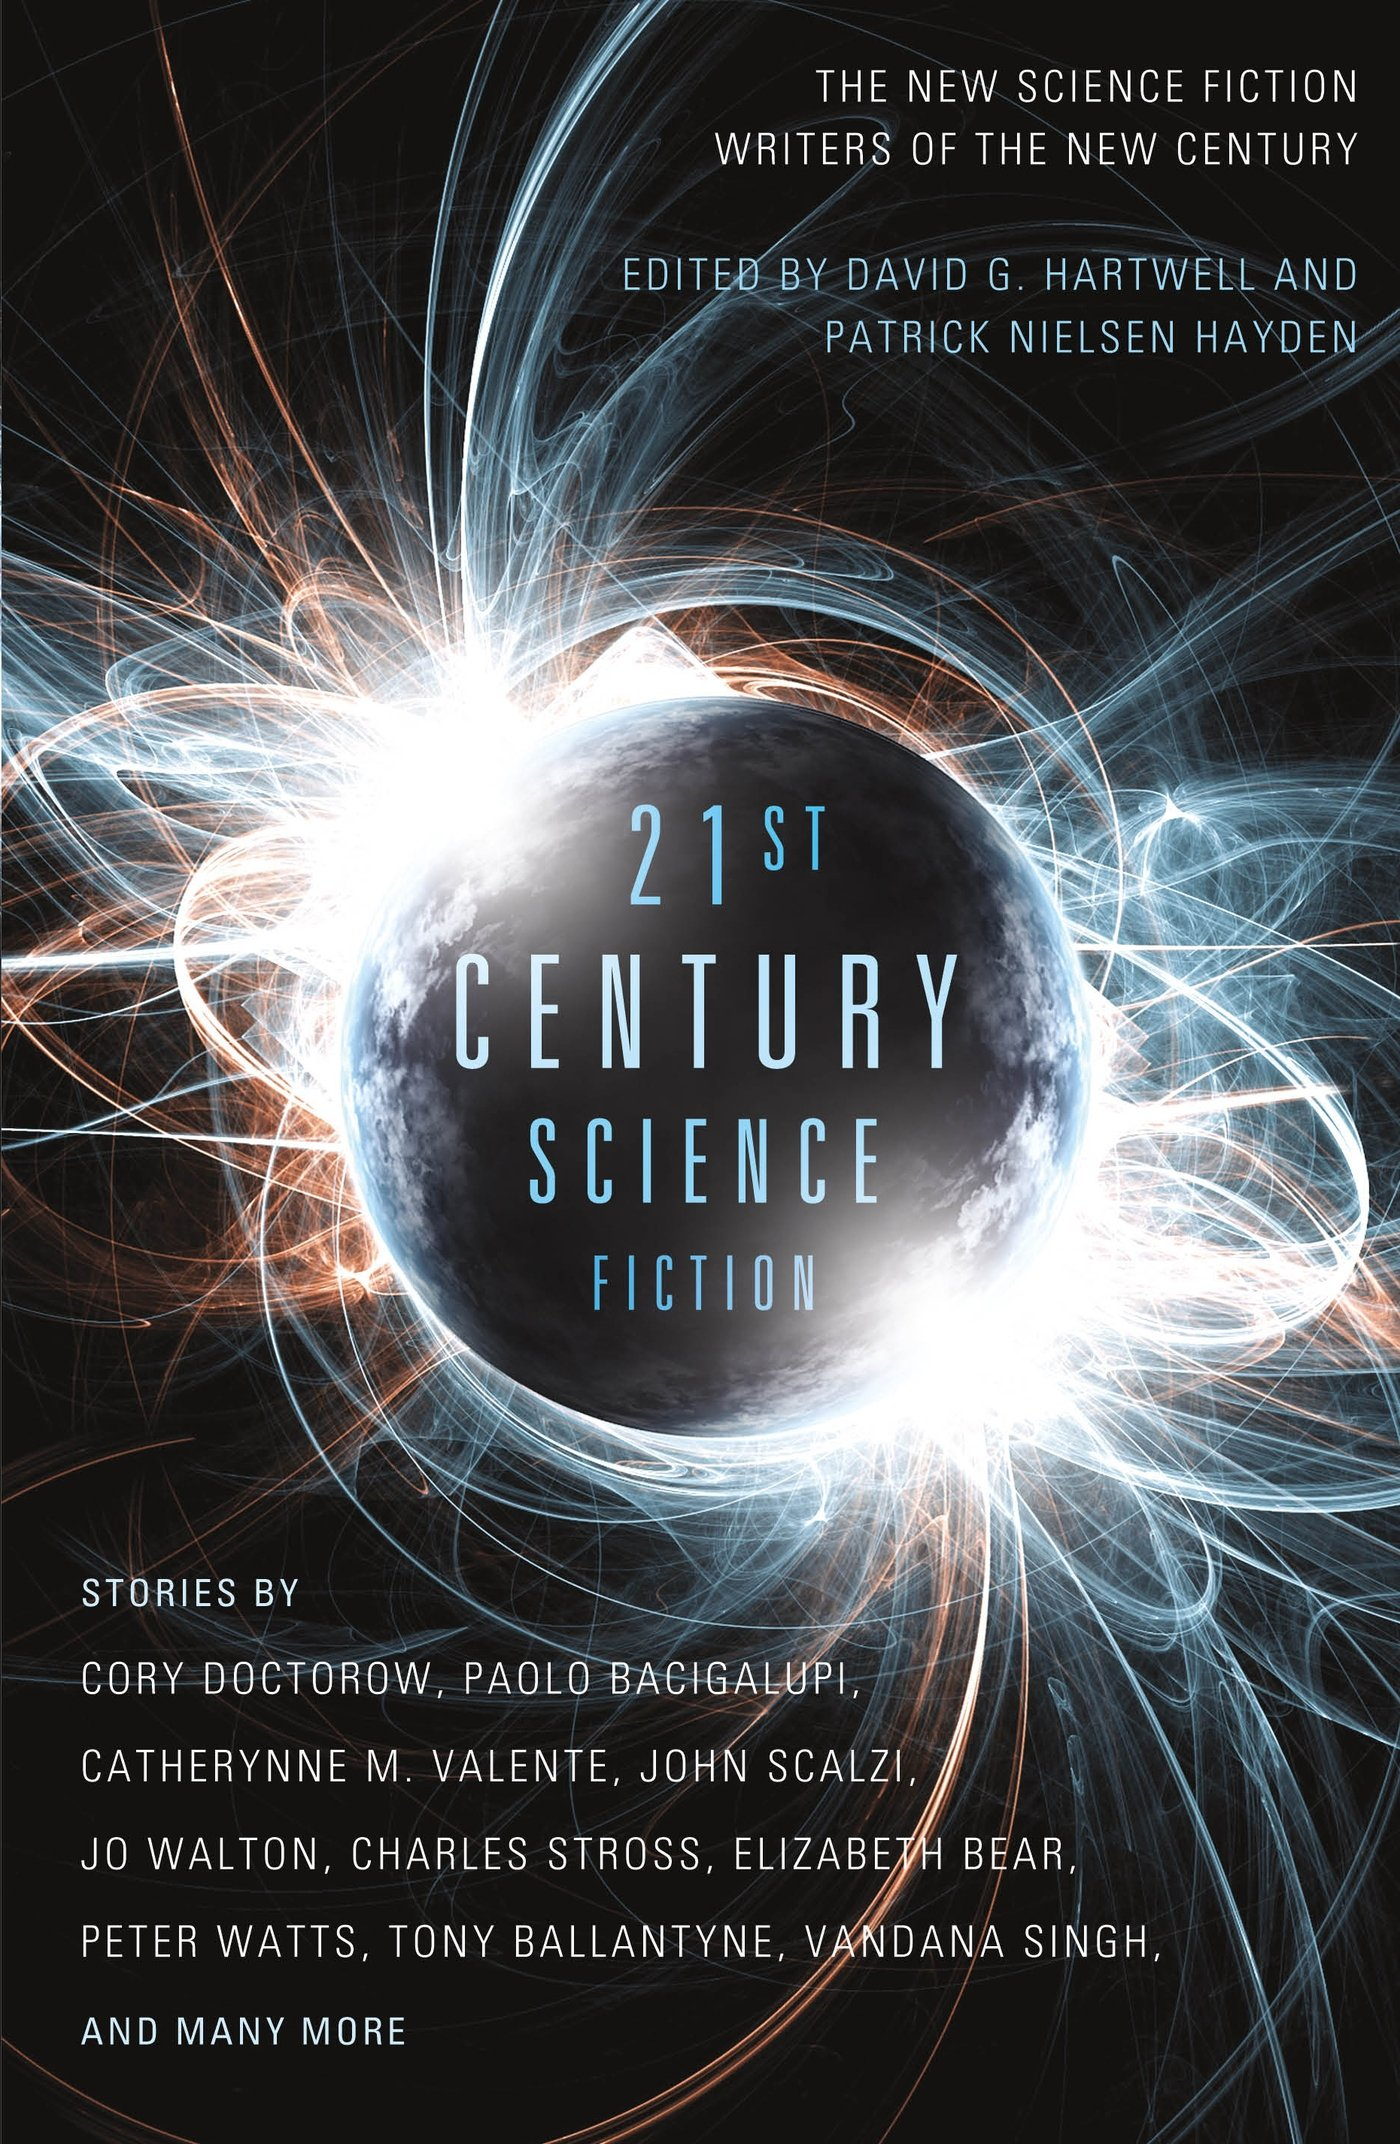 Twenty-First Century Science Fiction: An Anthology: Amazon.es: Hartwell, David G., Hartwell, David G., Hayden, Patrick Nielsen: Libros en idiomas extranjeros